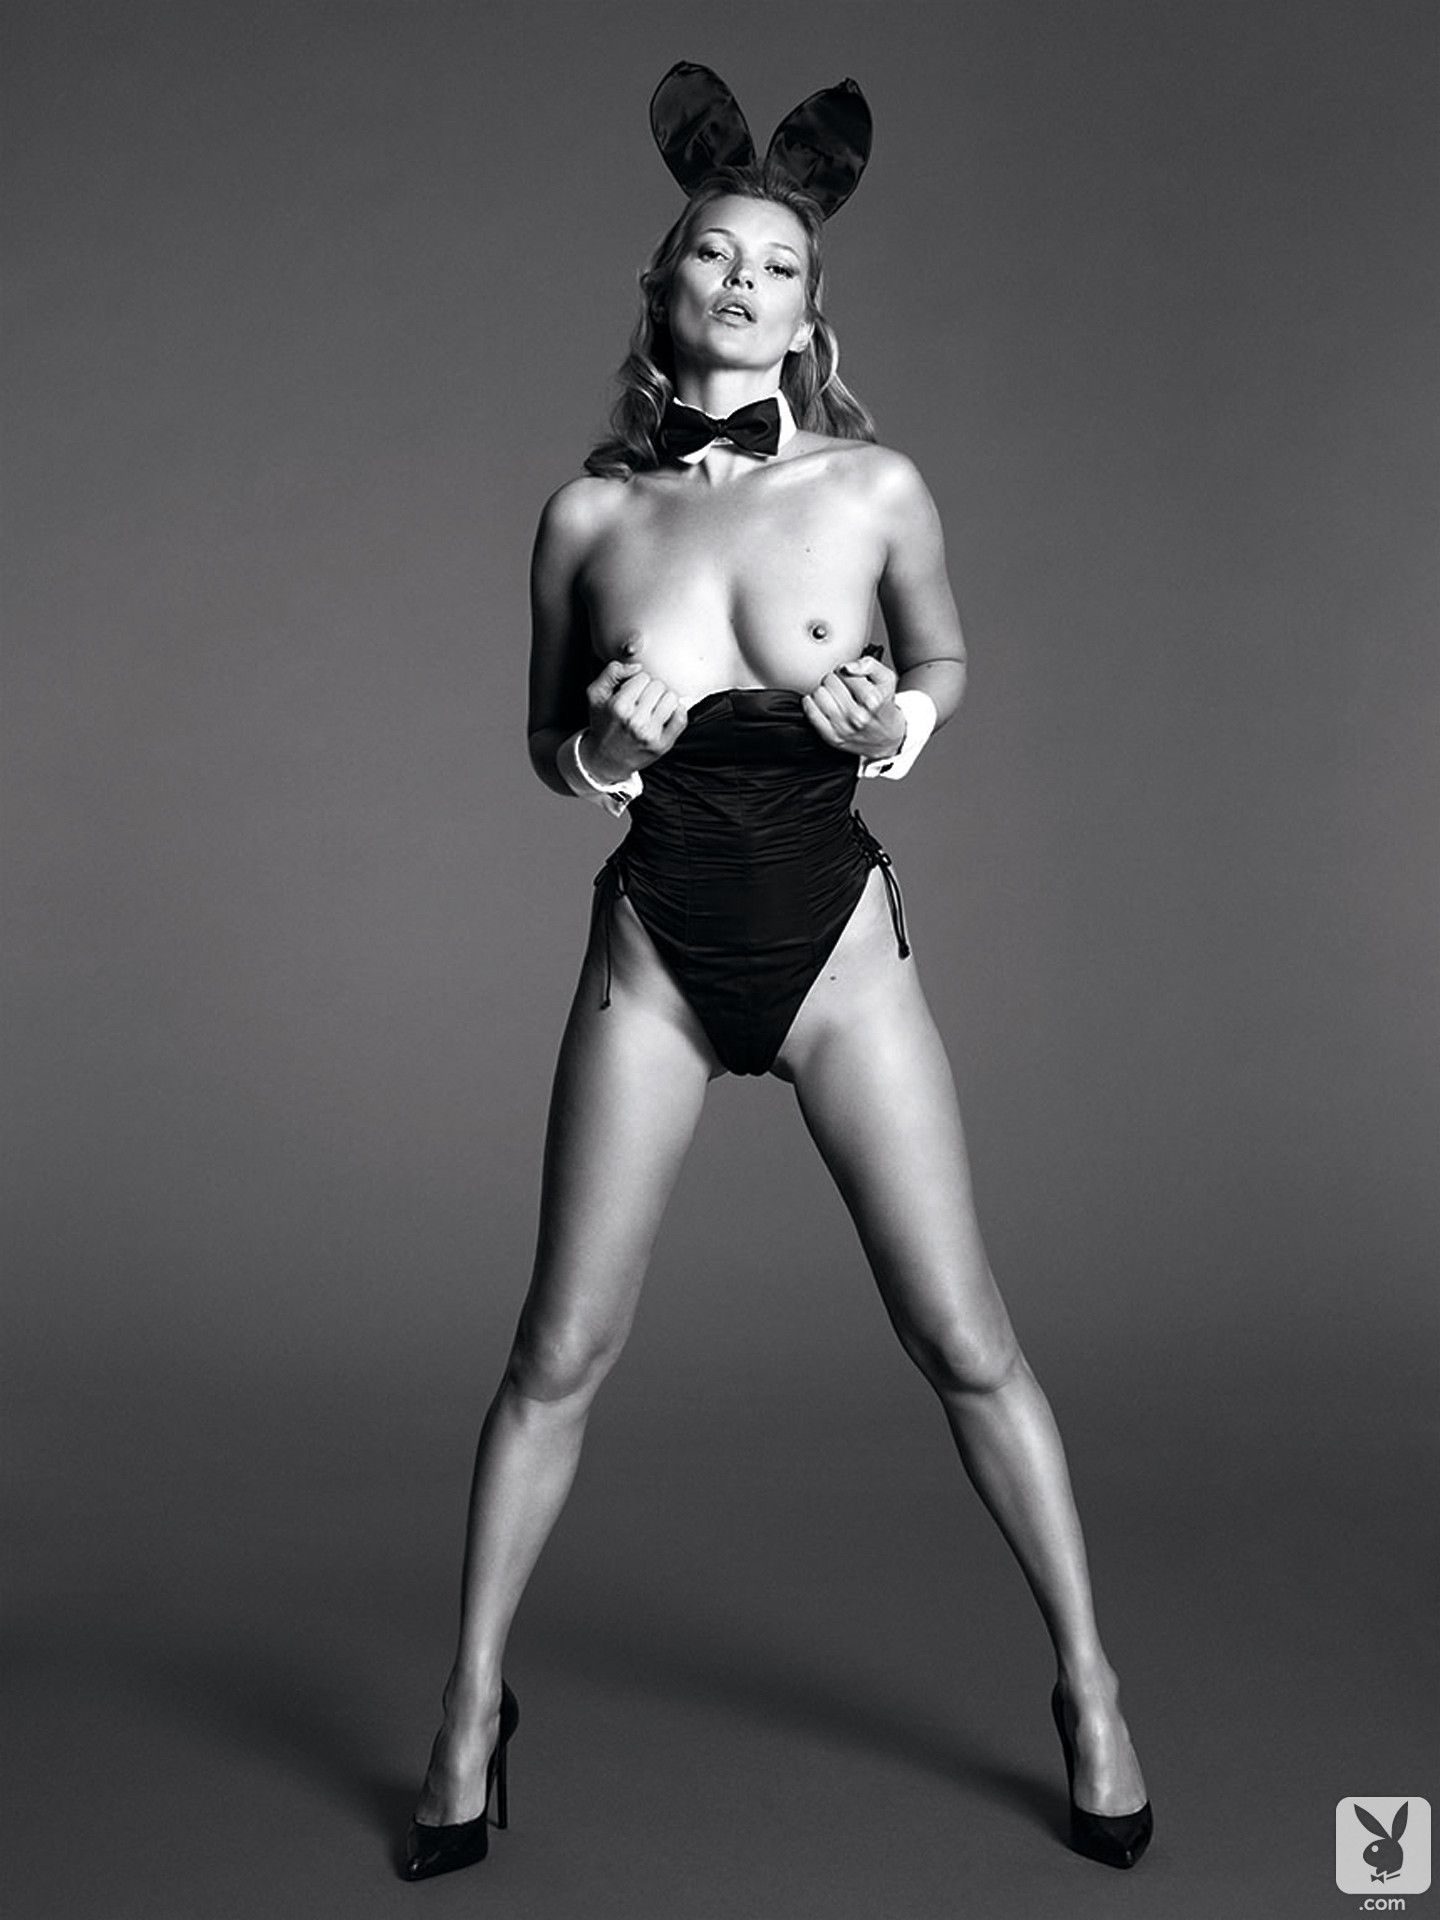 For Kate moss first nude